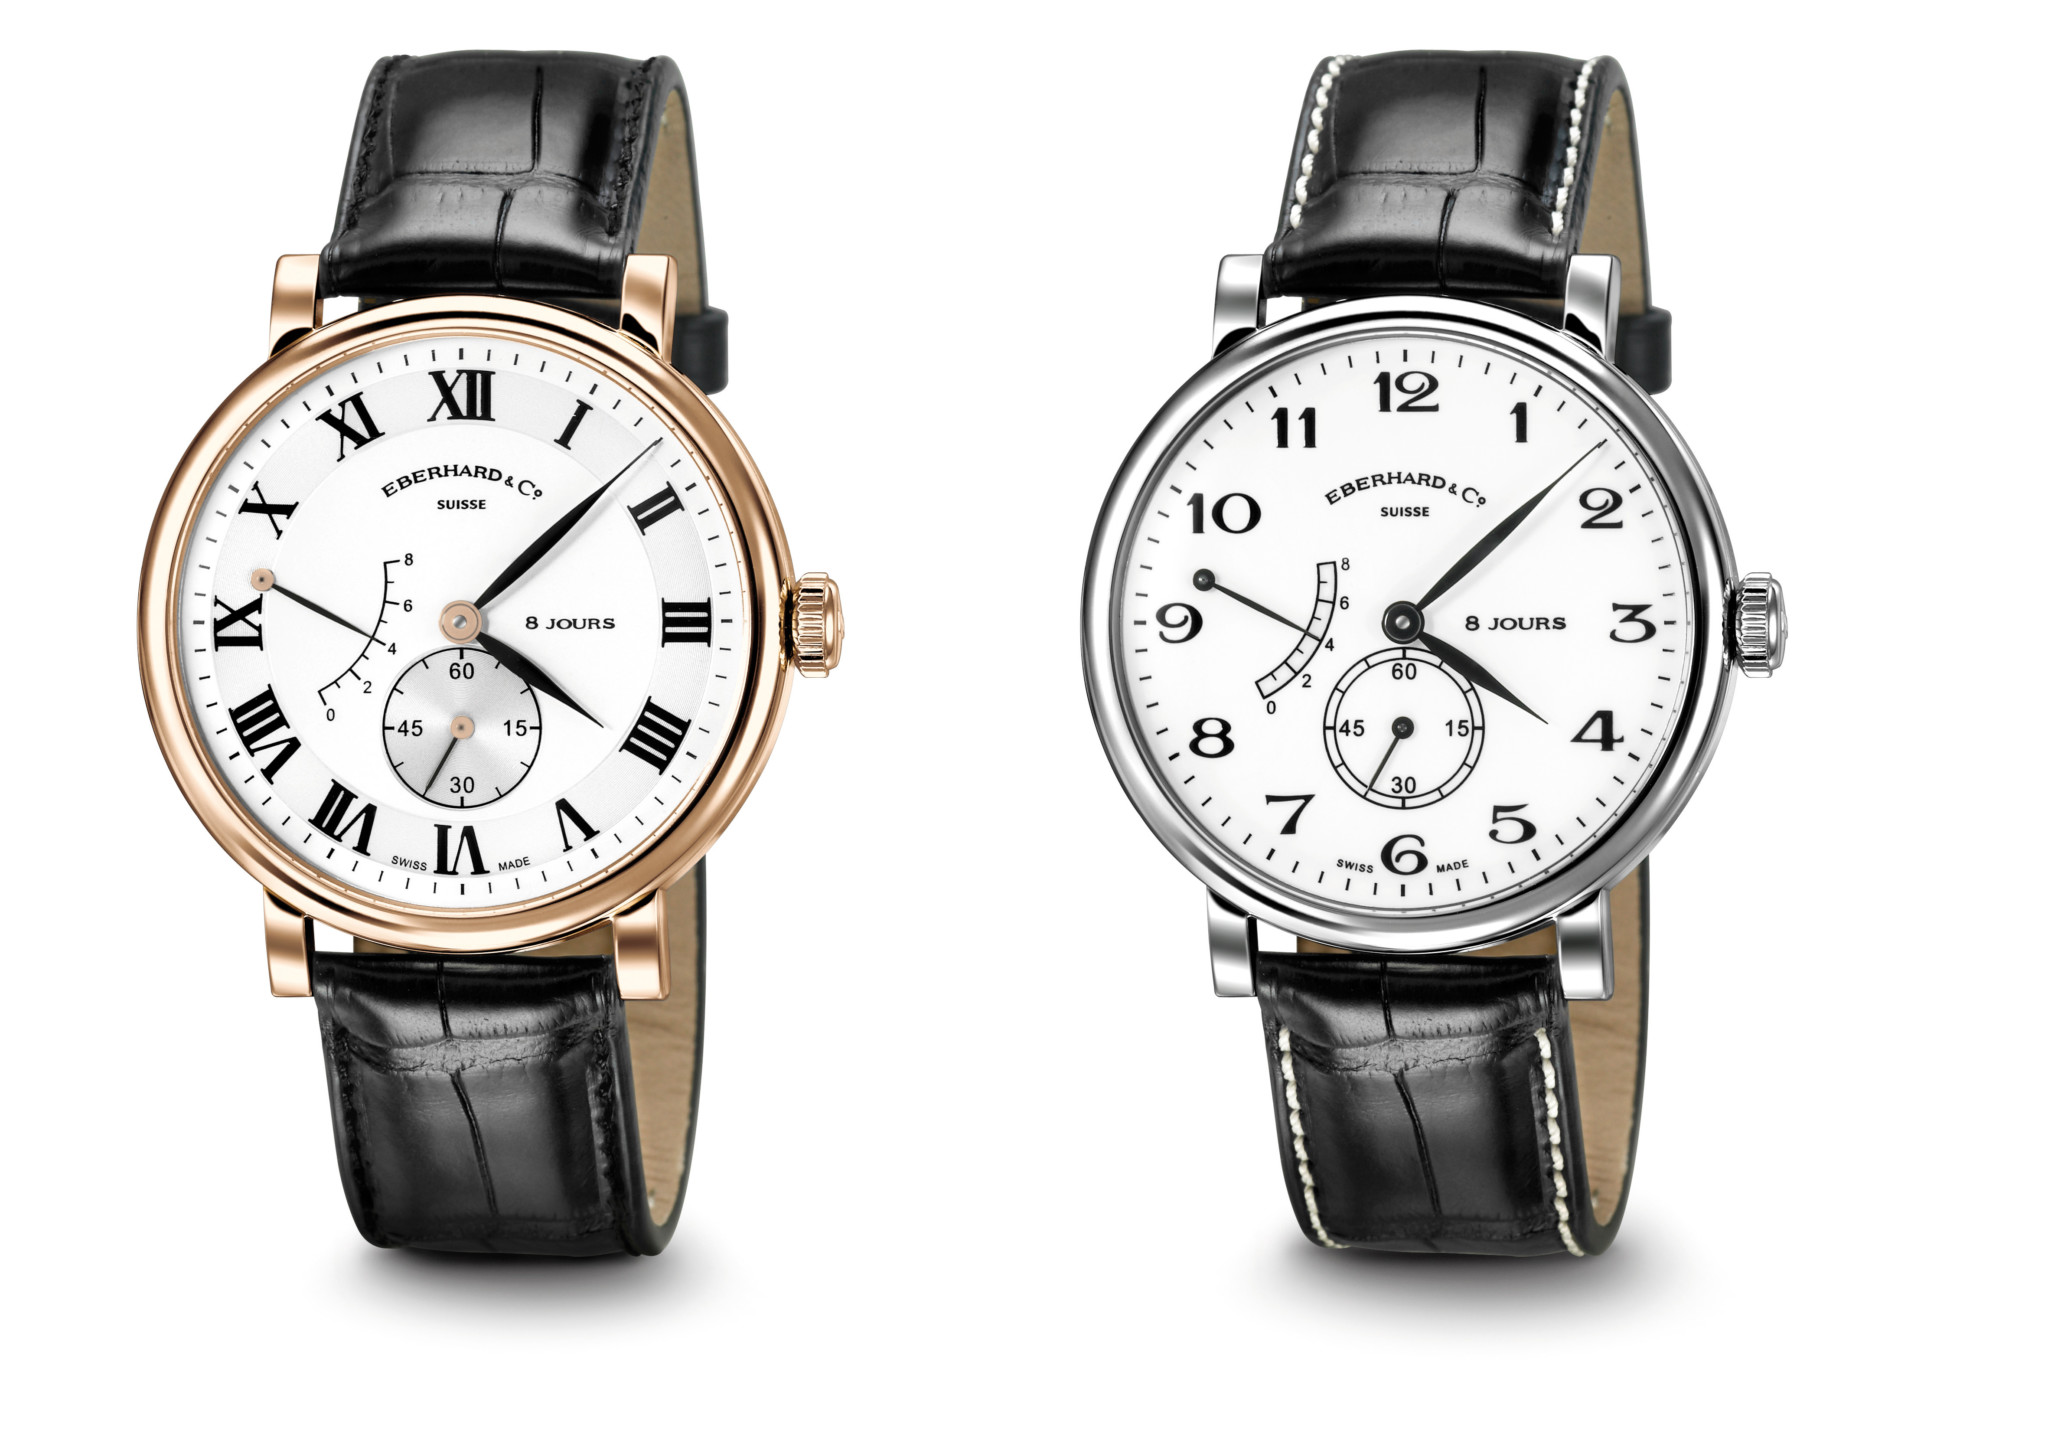 eberhard-co-8-jjours-grande-taille-gold-and-steel